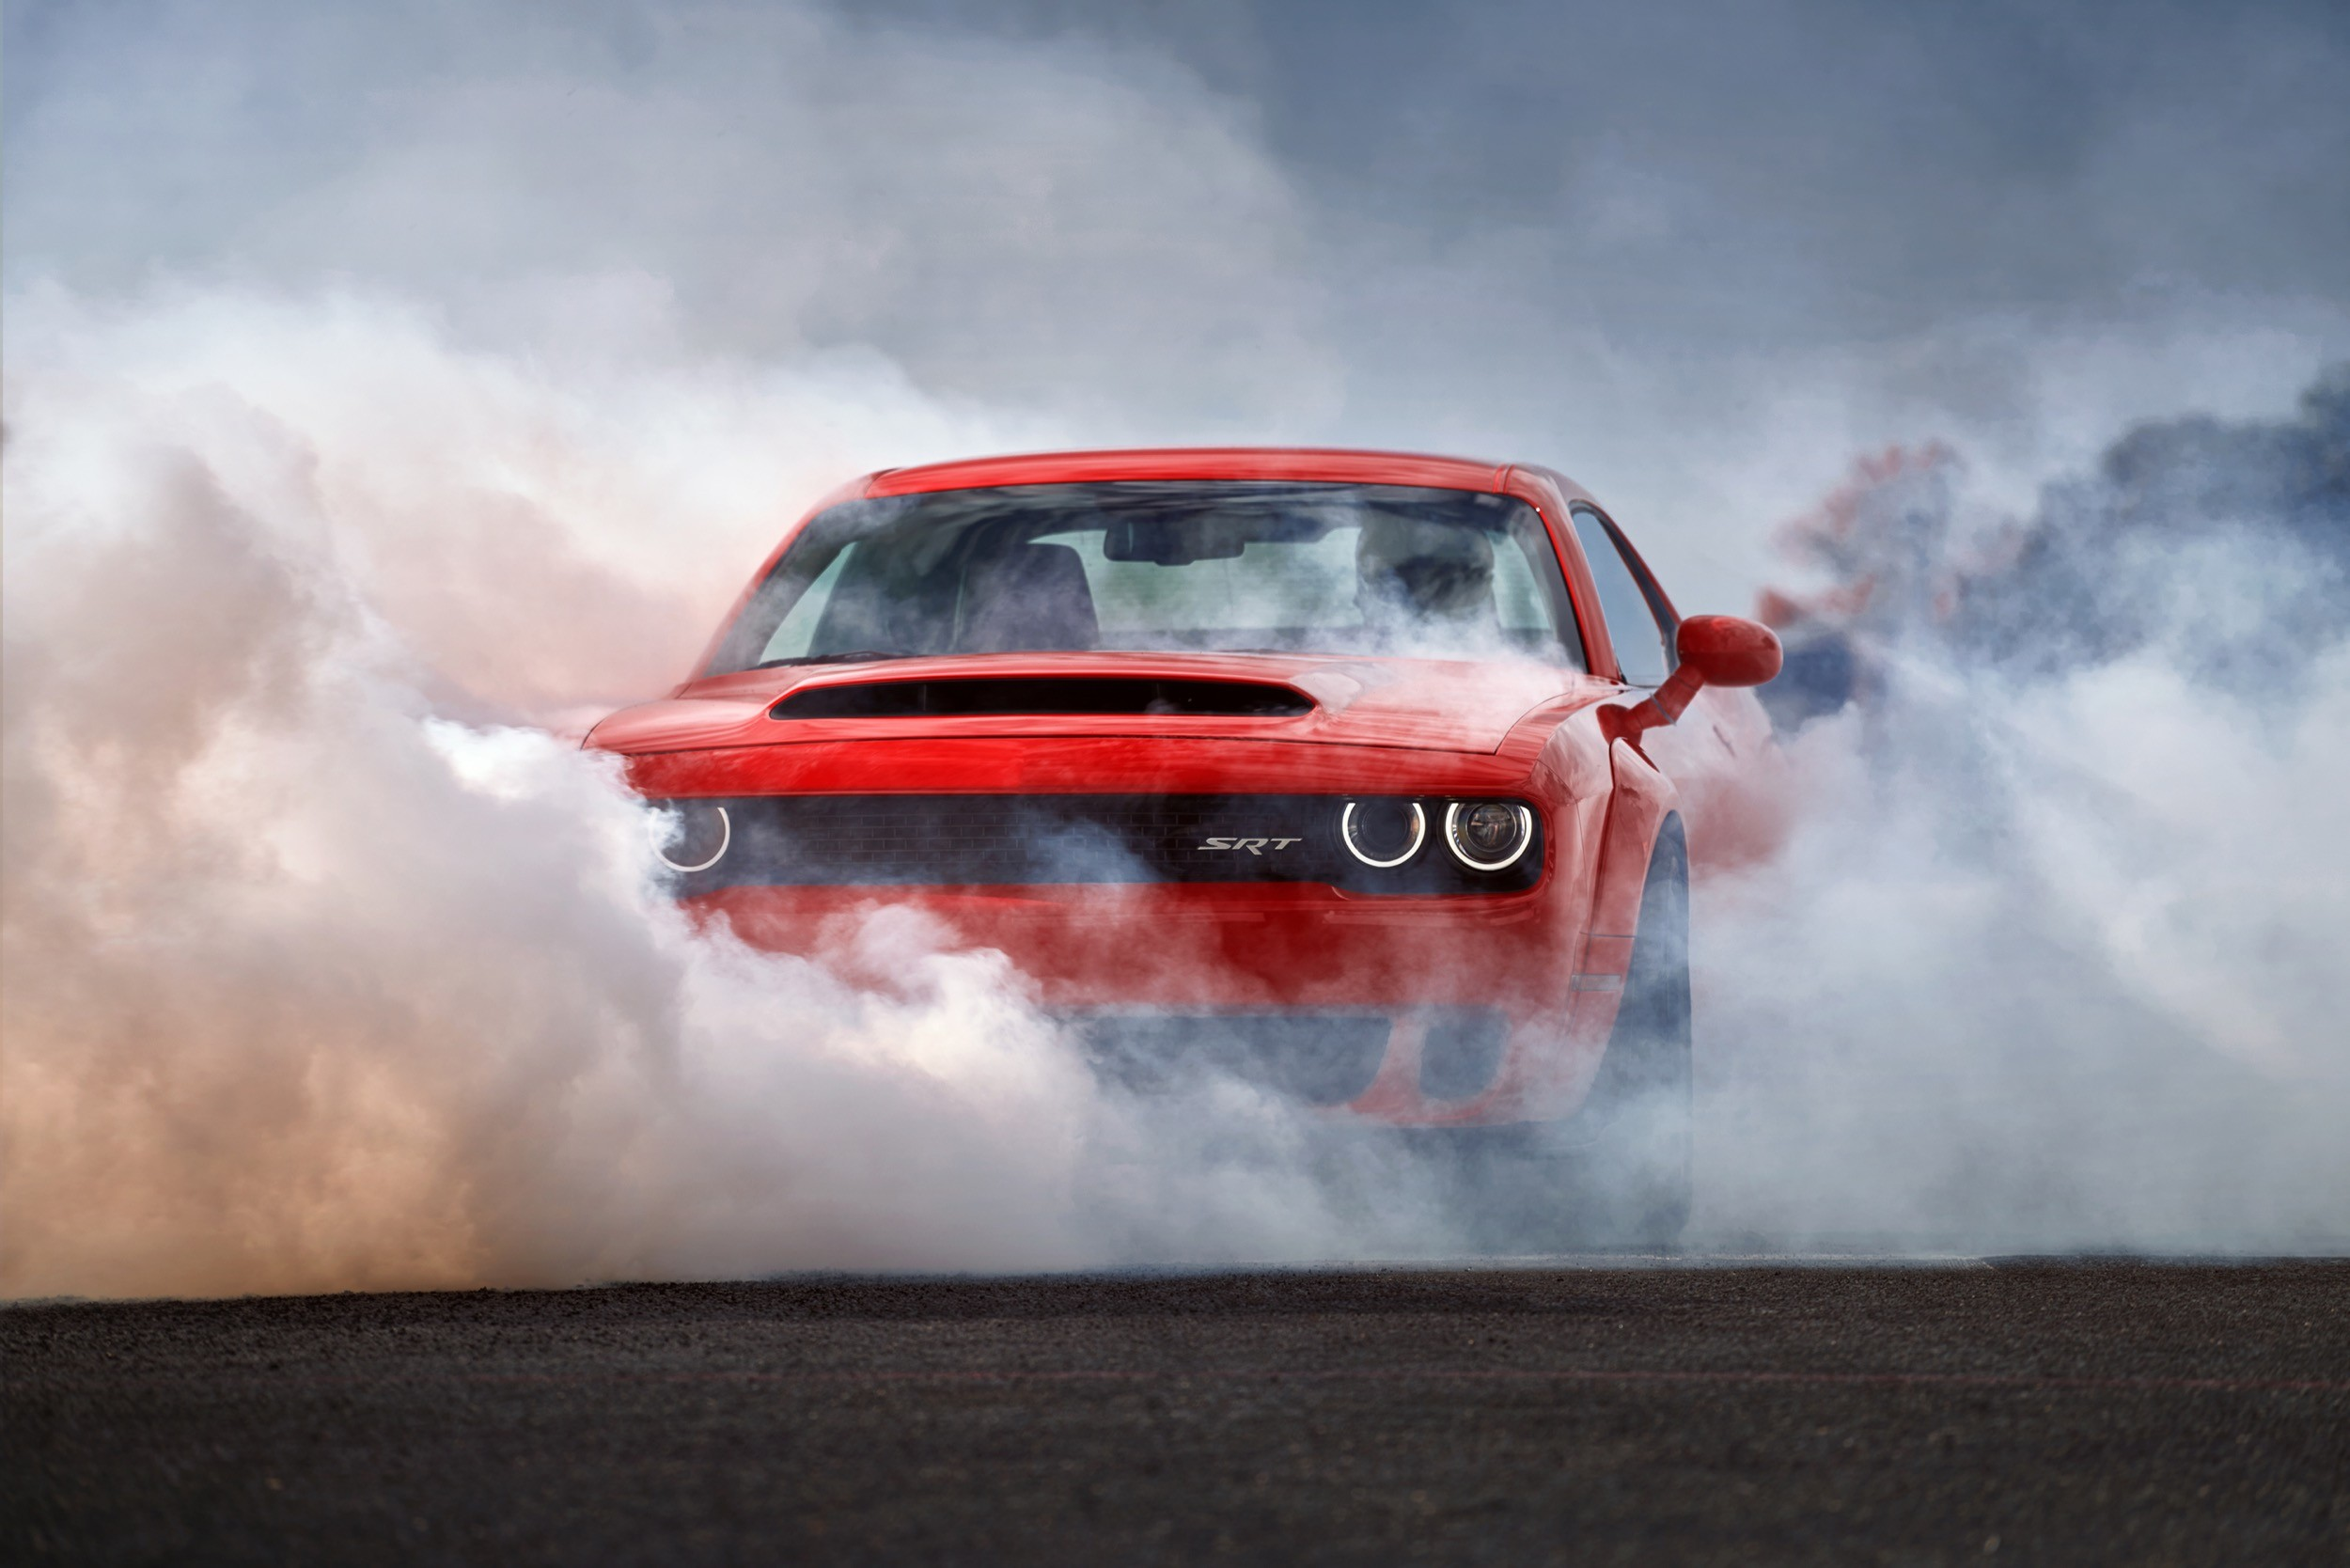 Dodge Demon Wallpaper >> Wallpaper Dodge Challenger SRT Demon, HD wallpaper, red, 2017 New York Auto Show, Cars & Bikes ...